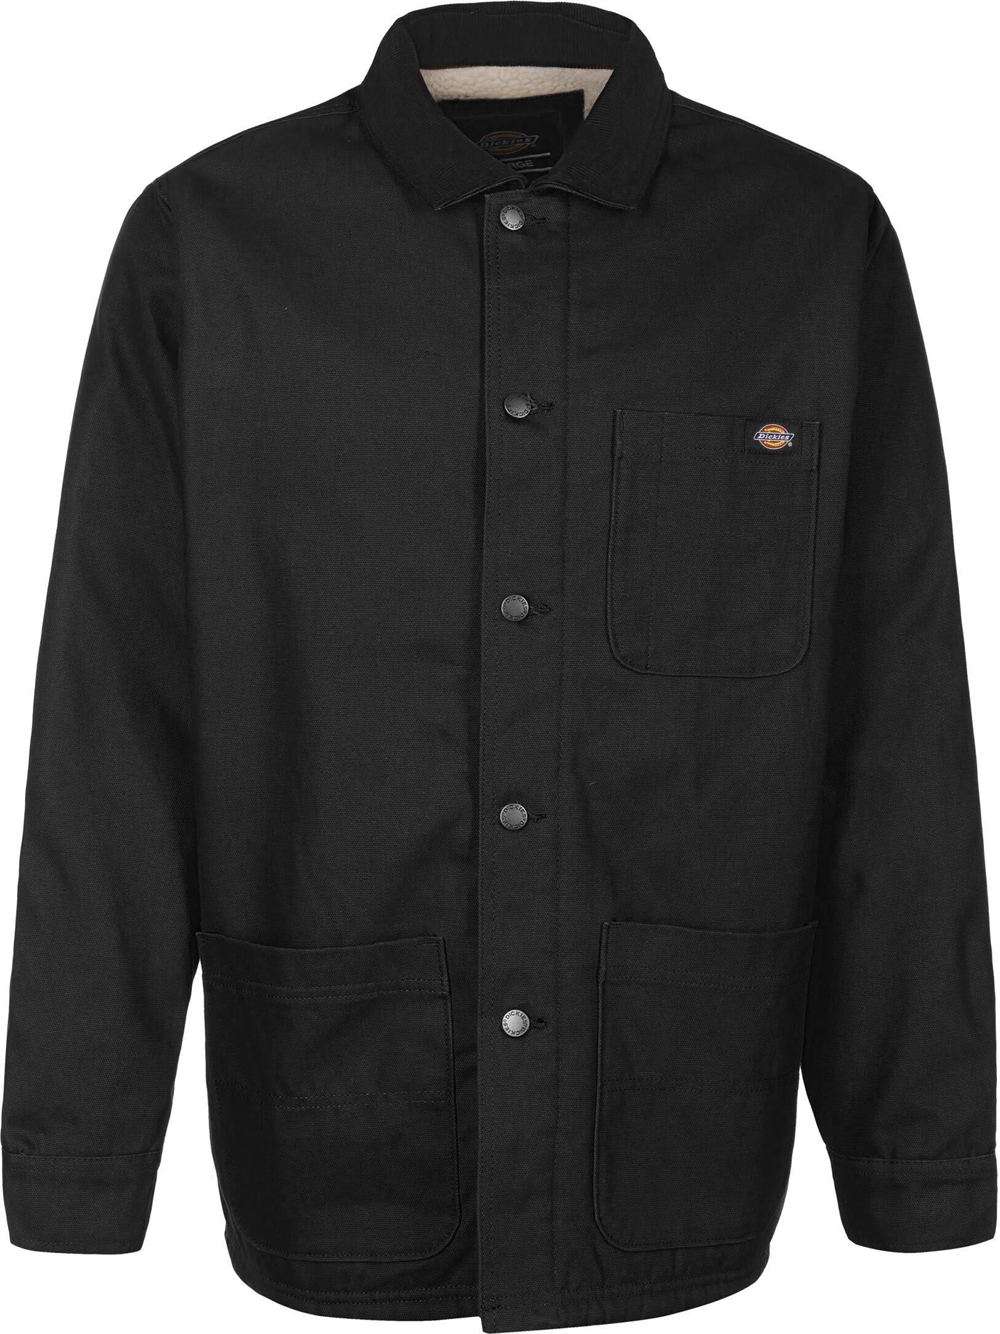 jacket with pockets man black in cotton DICKIES | Jackets | DK0A4XGABLK1